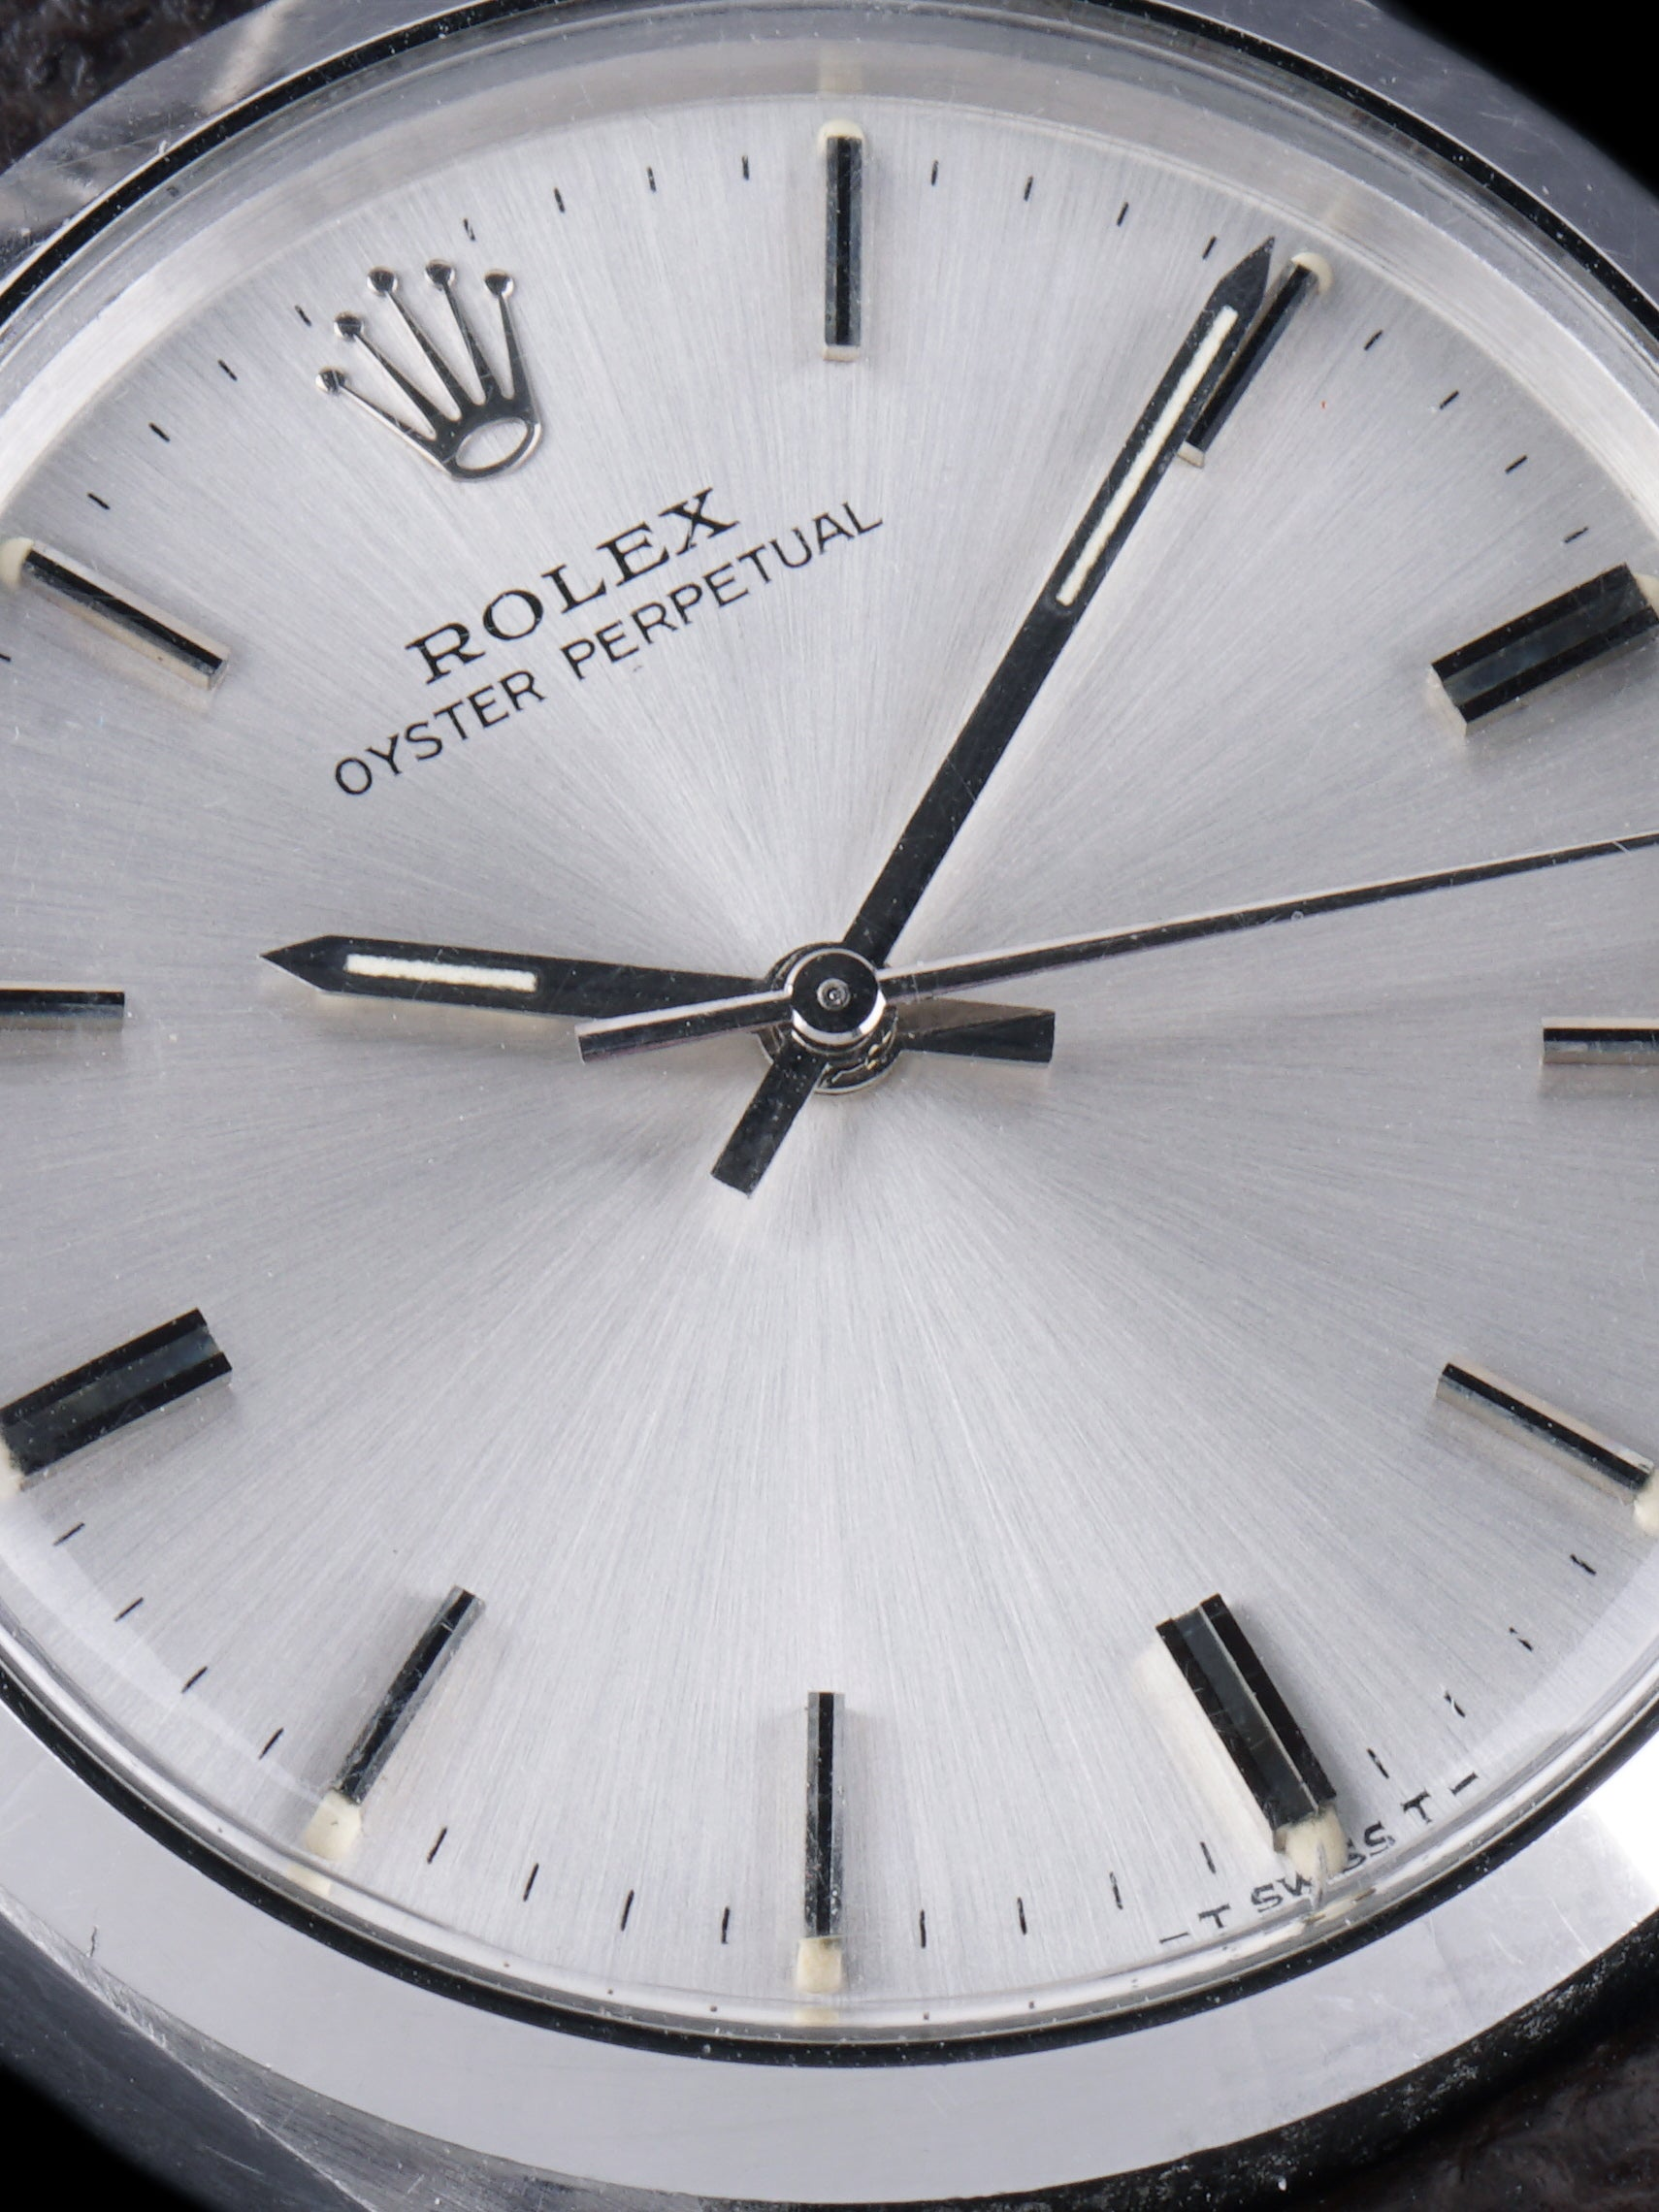 1973 Rolex Oyster-Perpetual (Ref. 5500) W/ Guarantee Paper